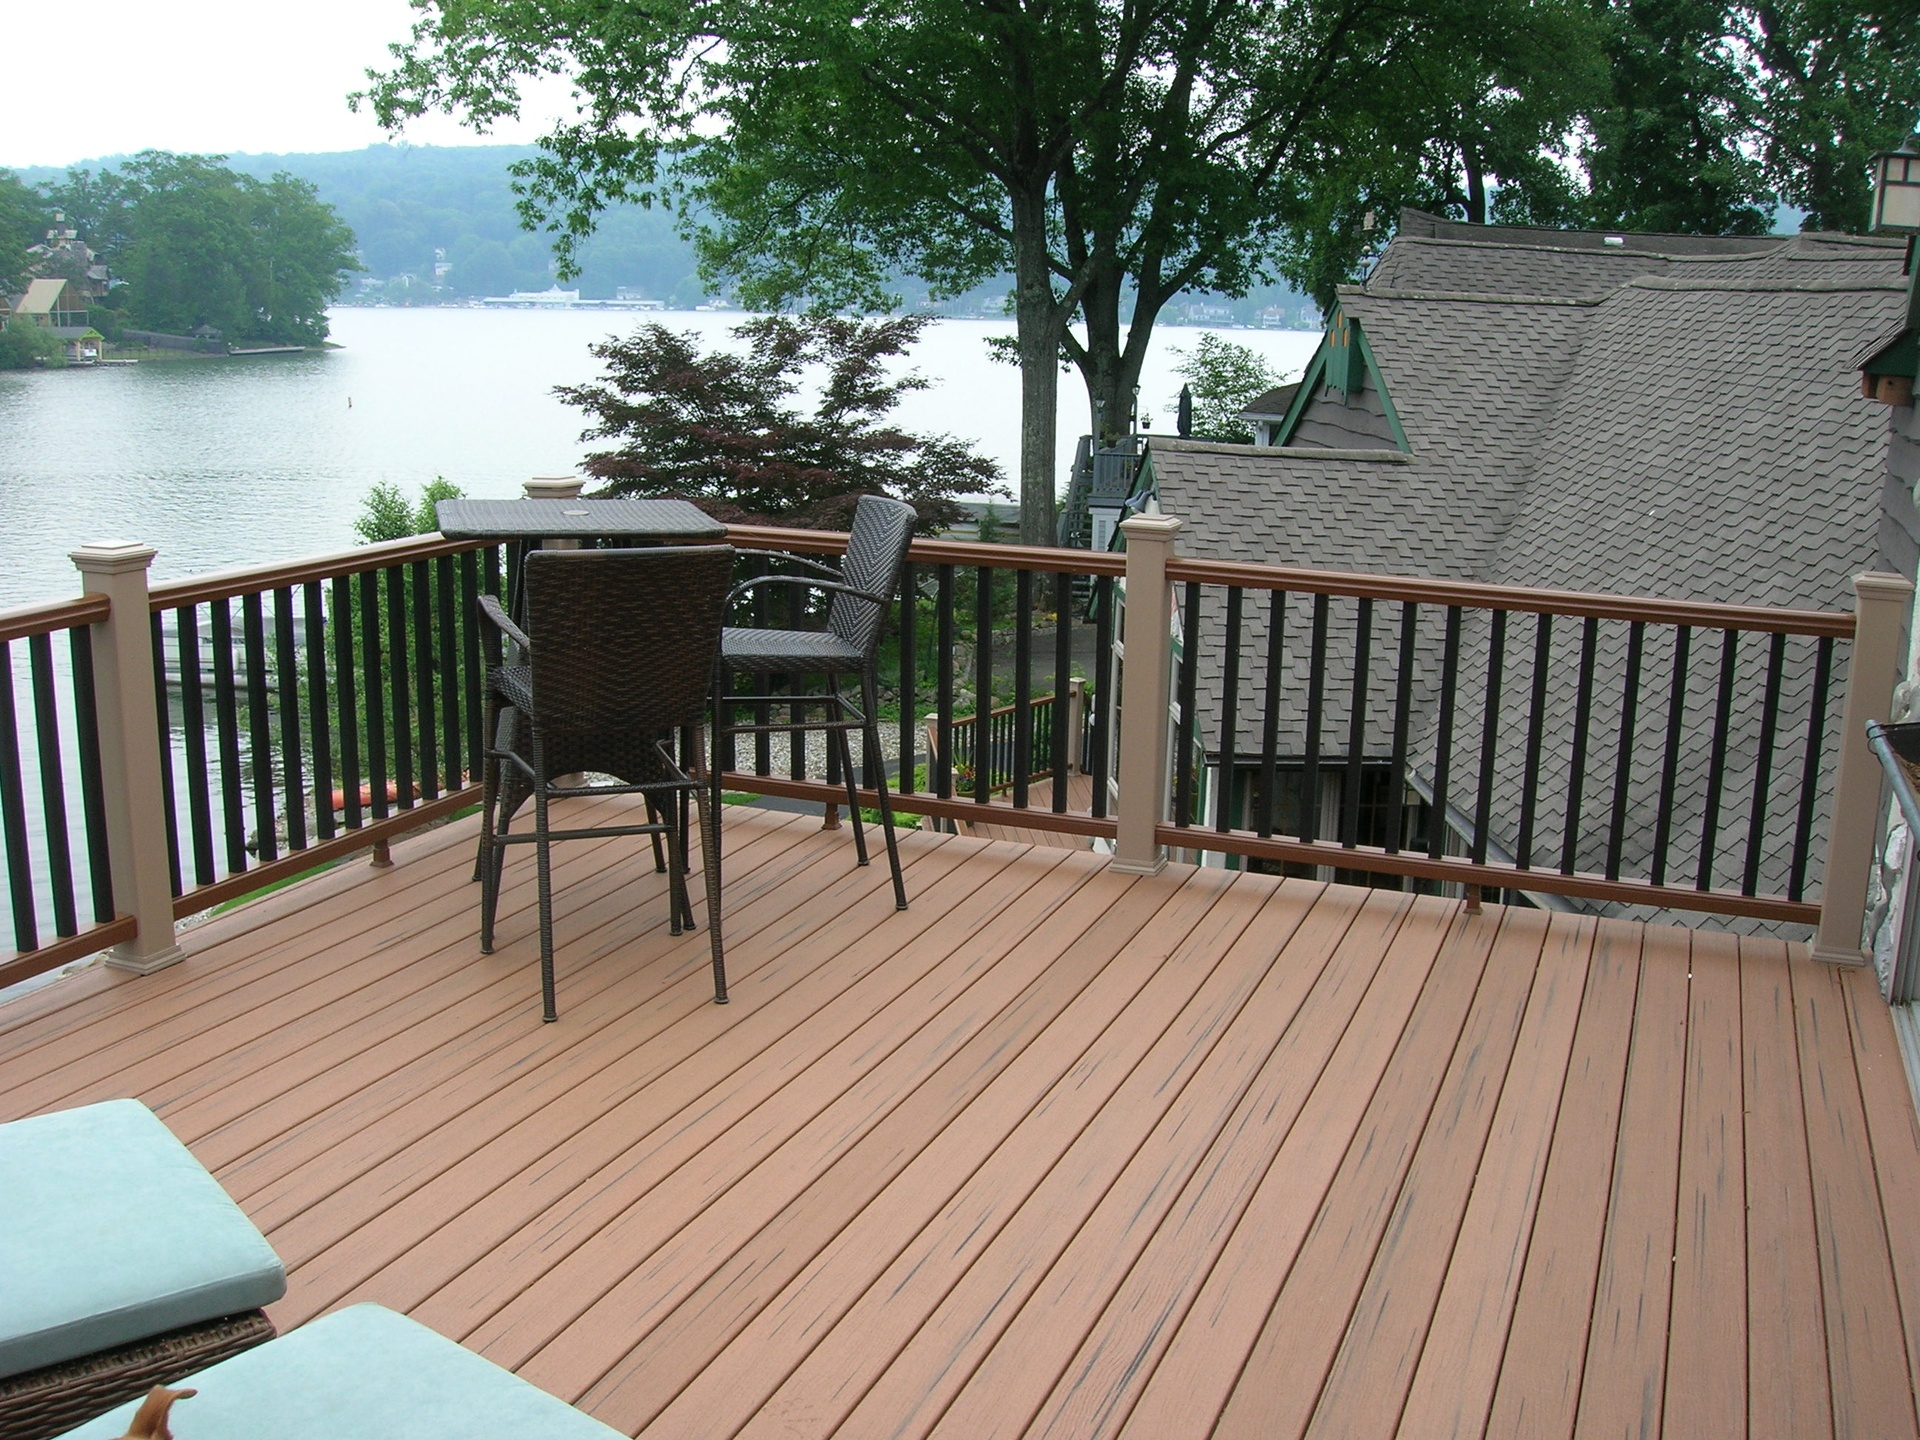 Two Story Full Length Trex Deck & Railing 2